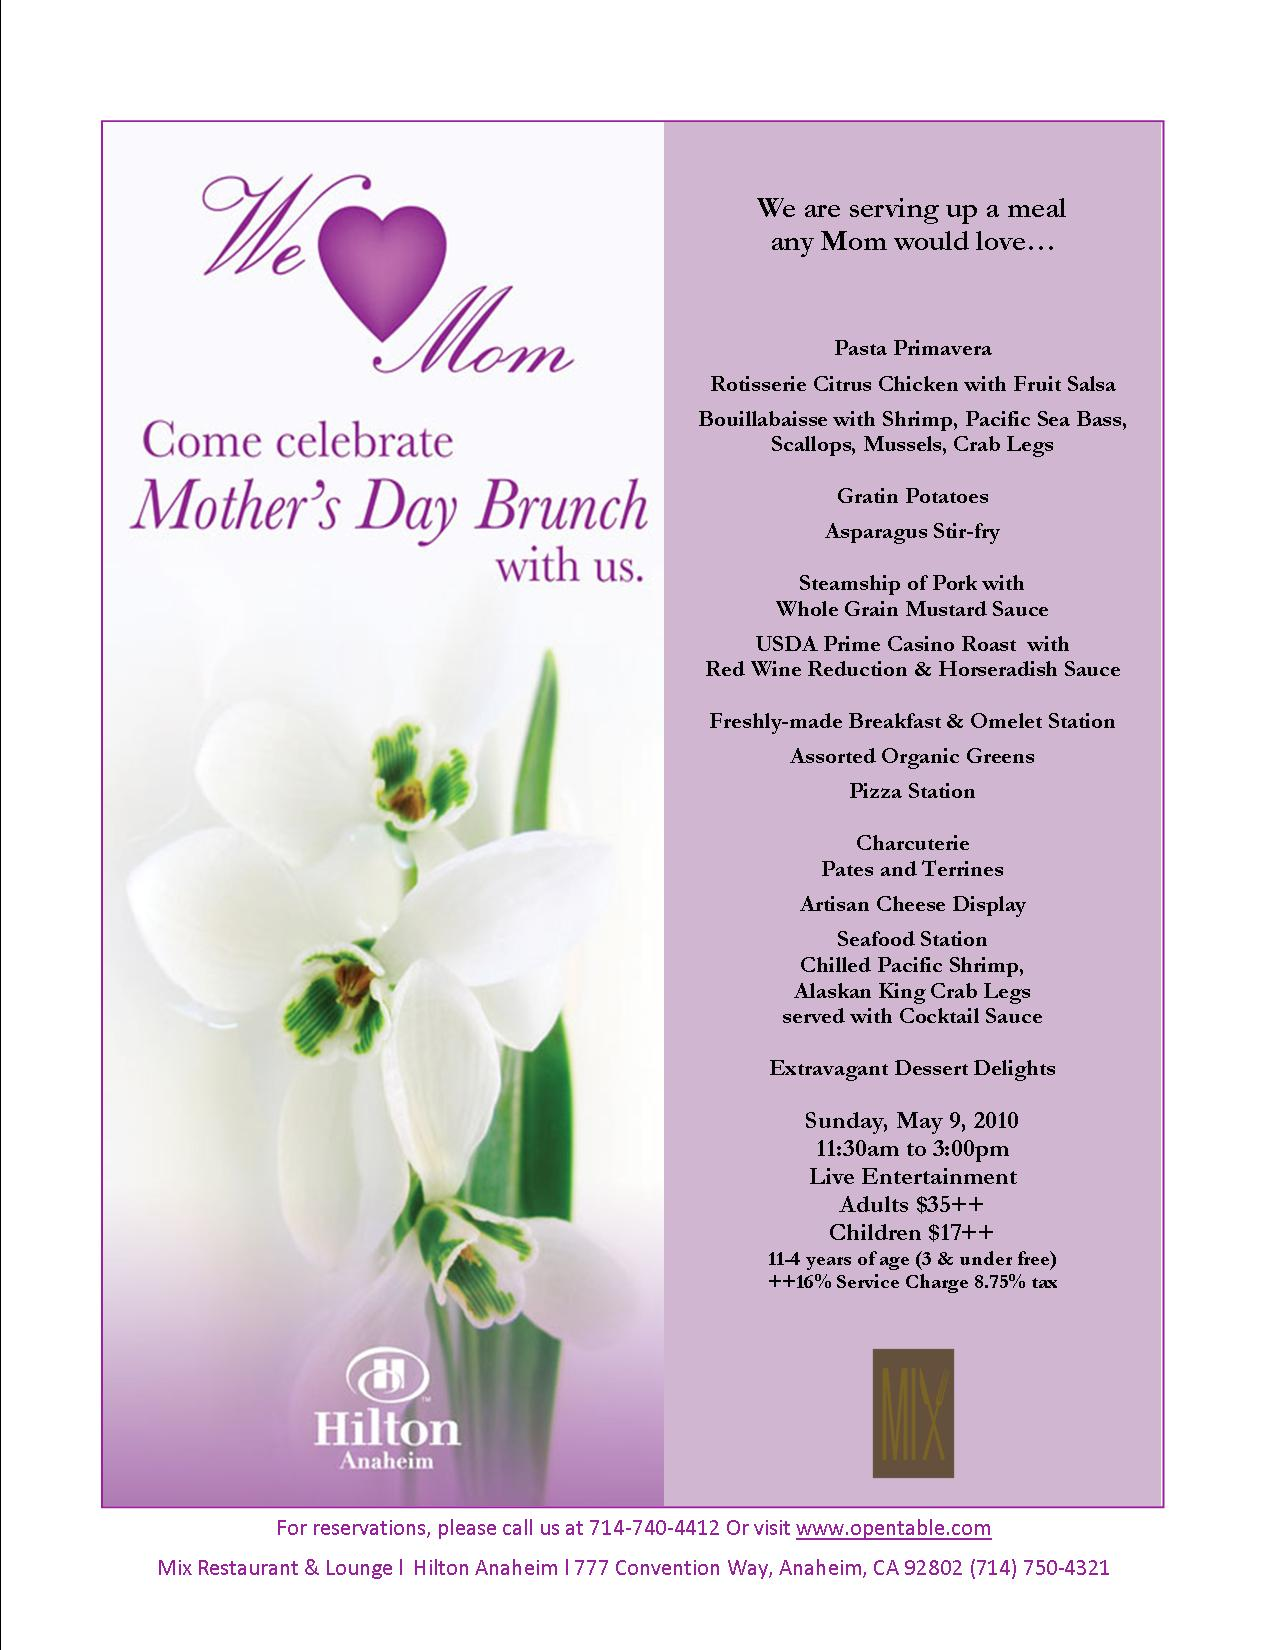 Mothers Day Brunch Today At Hilton Anaheim